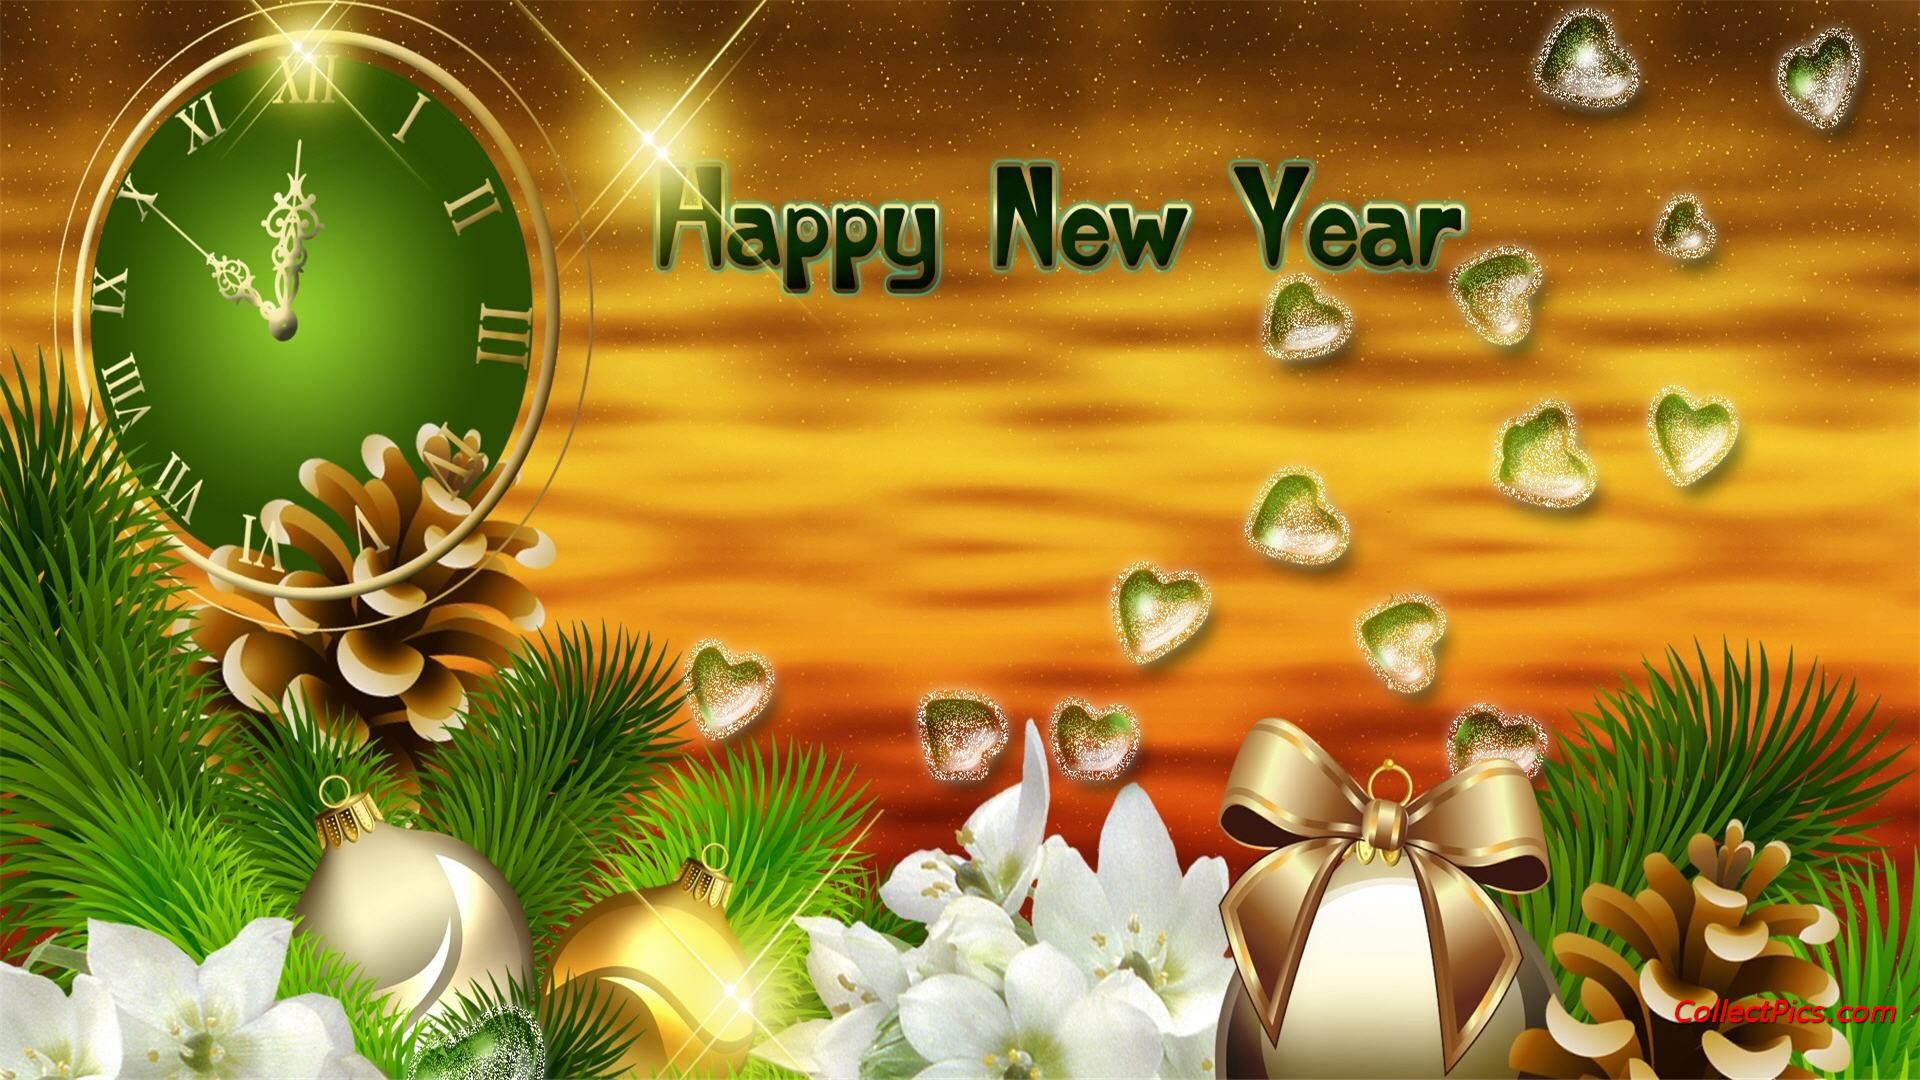 Happy New Year Backgrounds  8 1920x1080